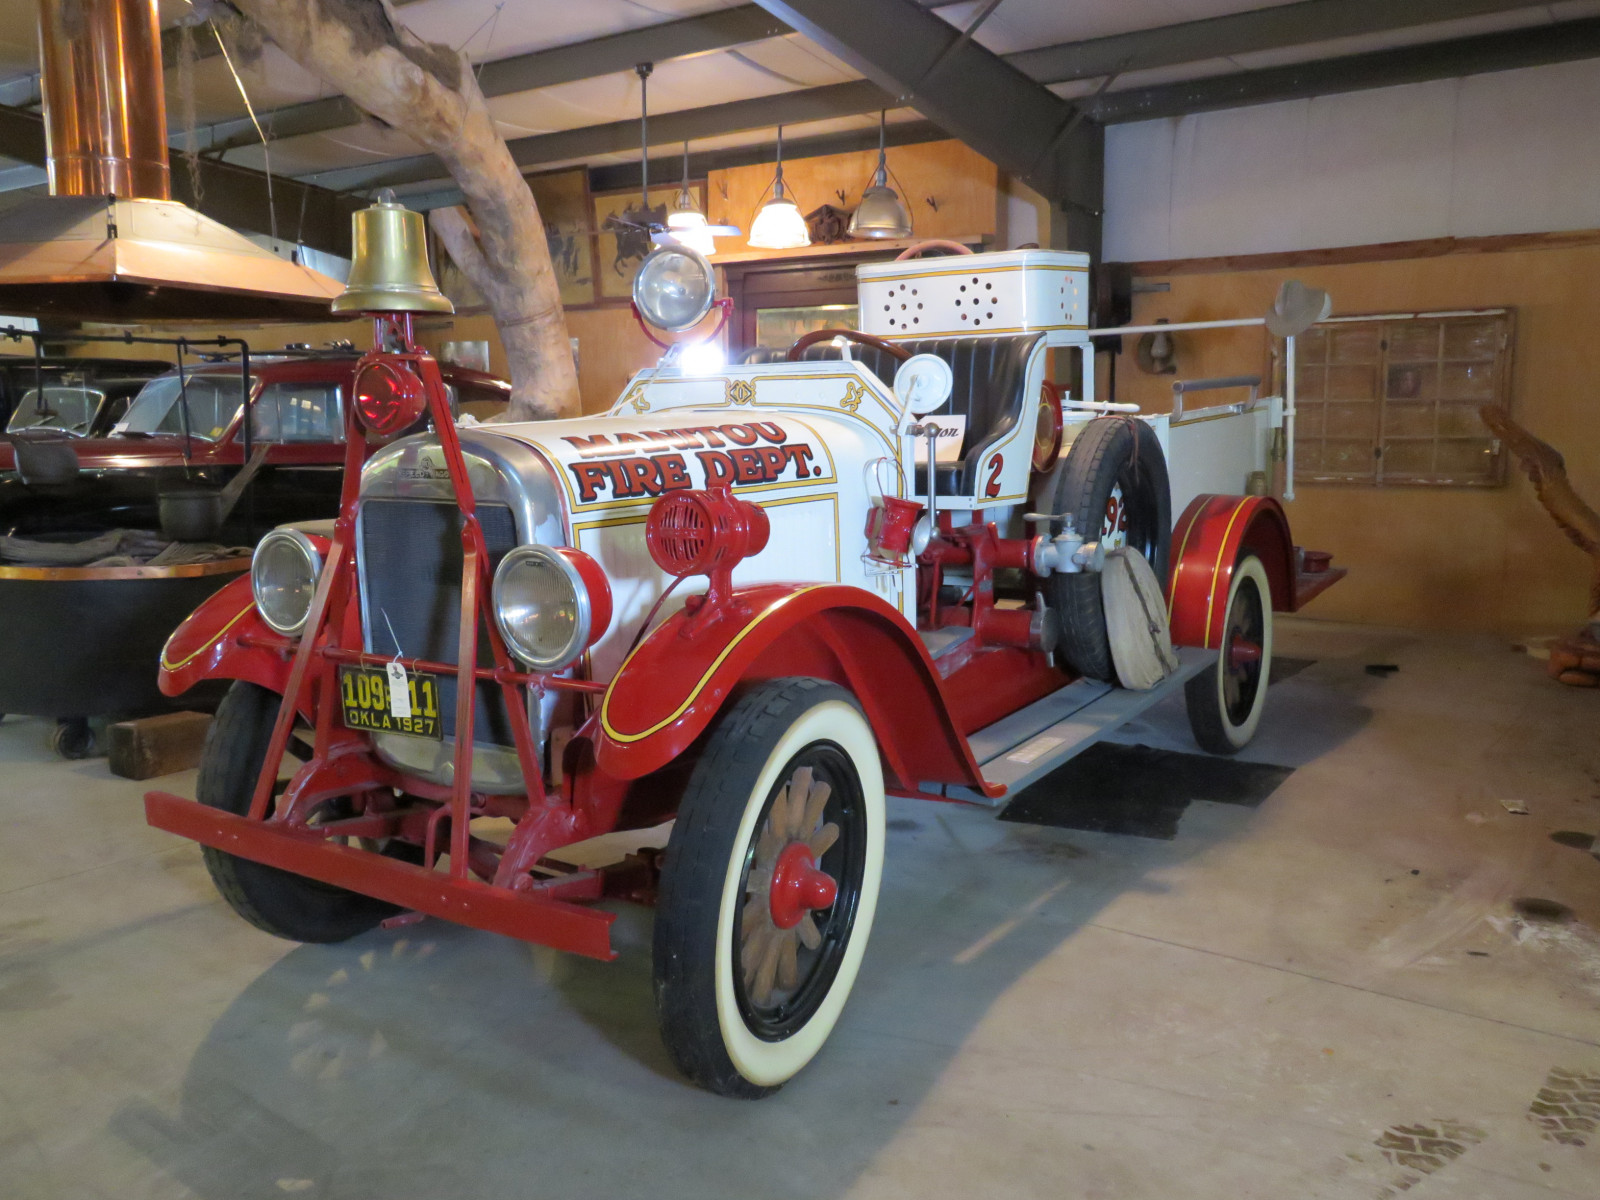 1927 REO Speed Wagon Fire Truck T6W99483 - Image 3